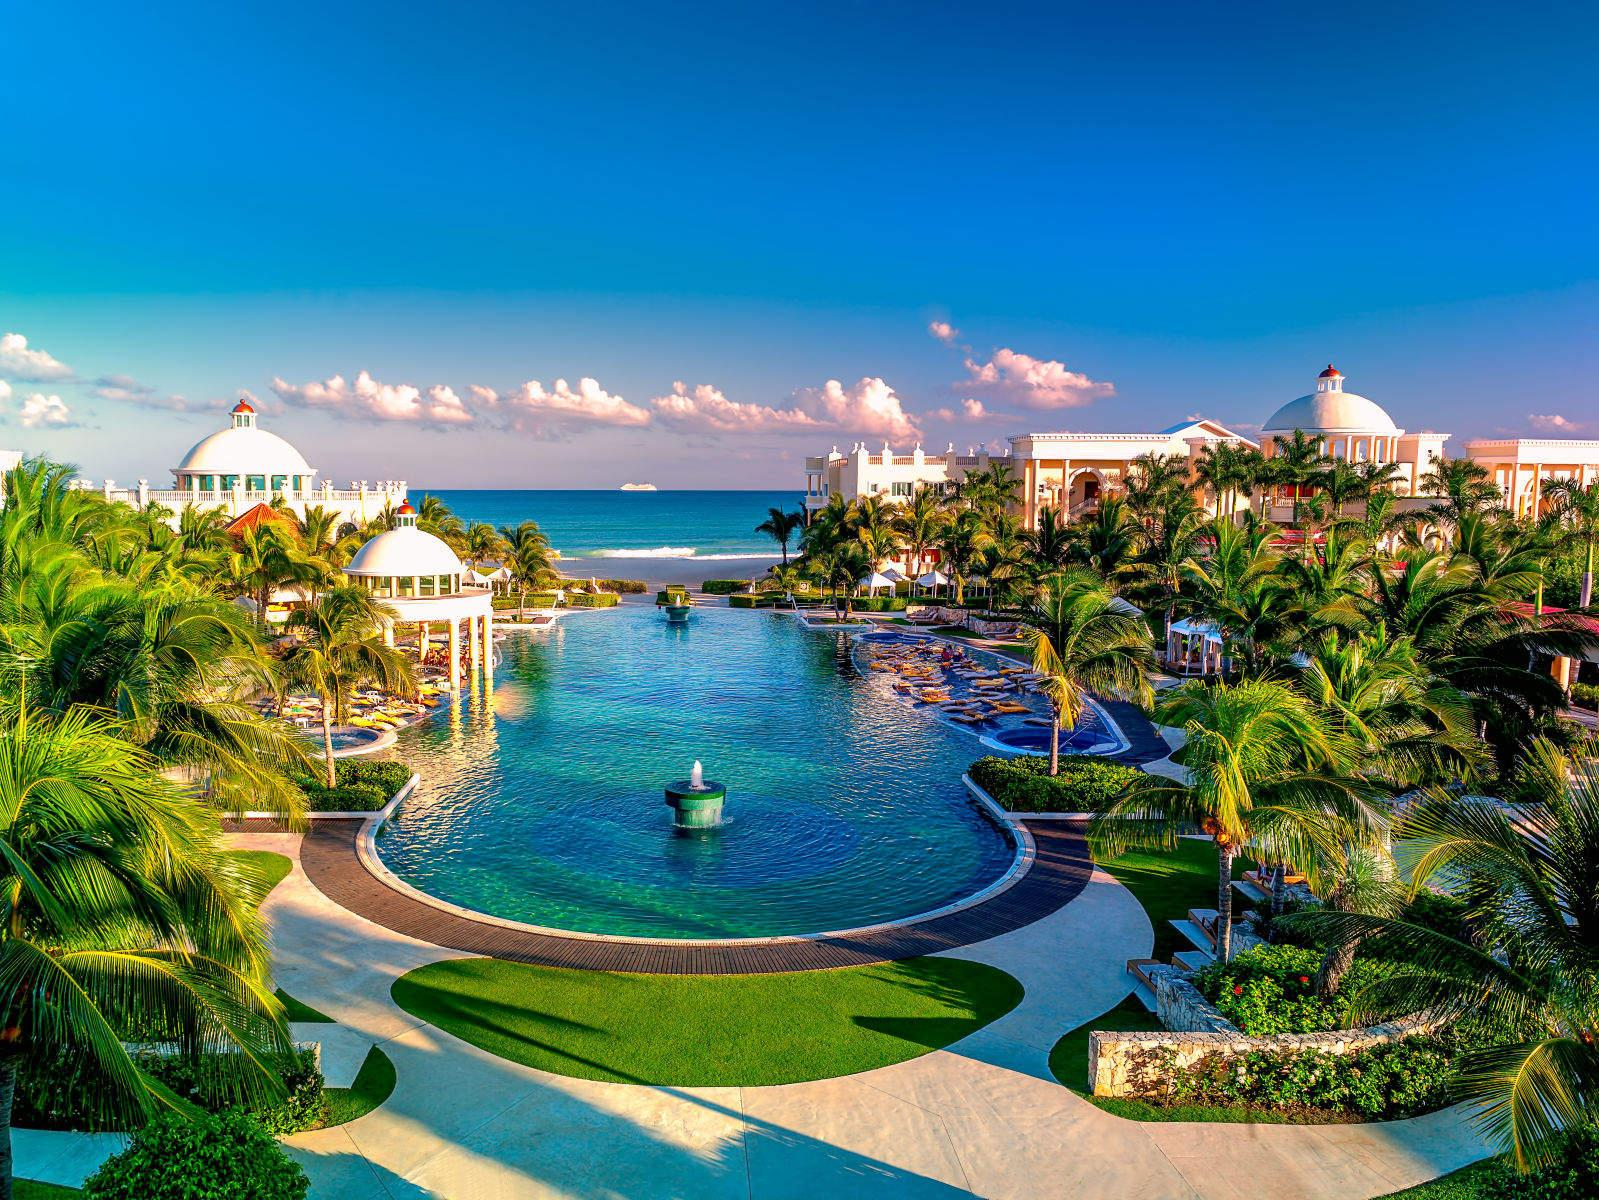 Resort in Grace Bay, Turks and Caicos Wallpapers and Backgrounds Image